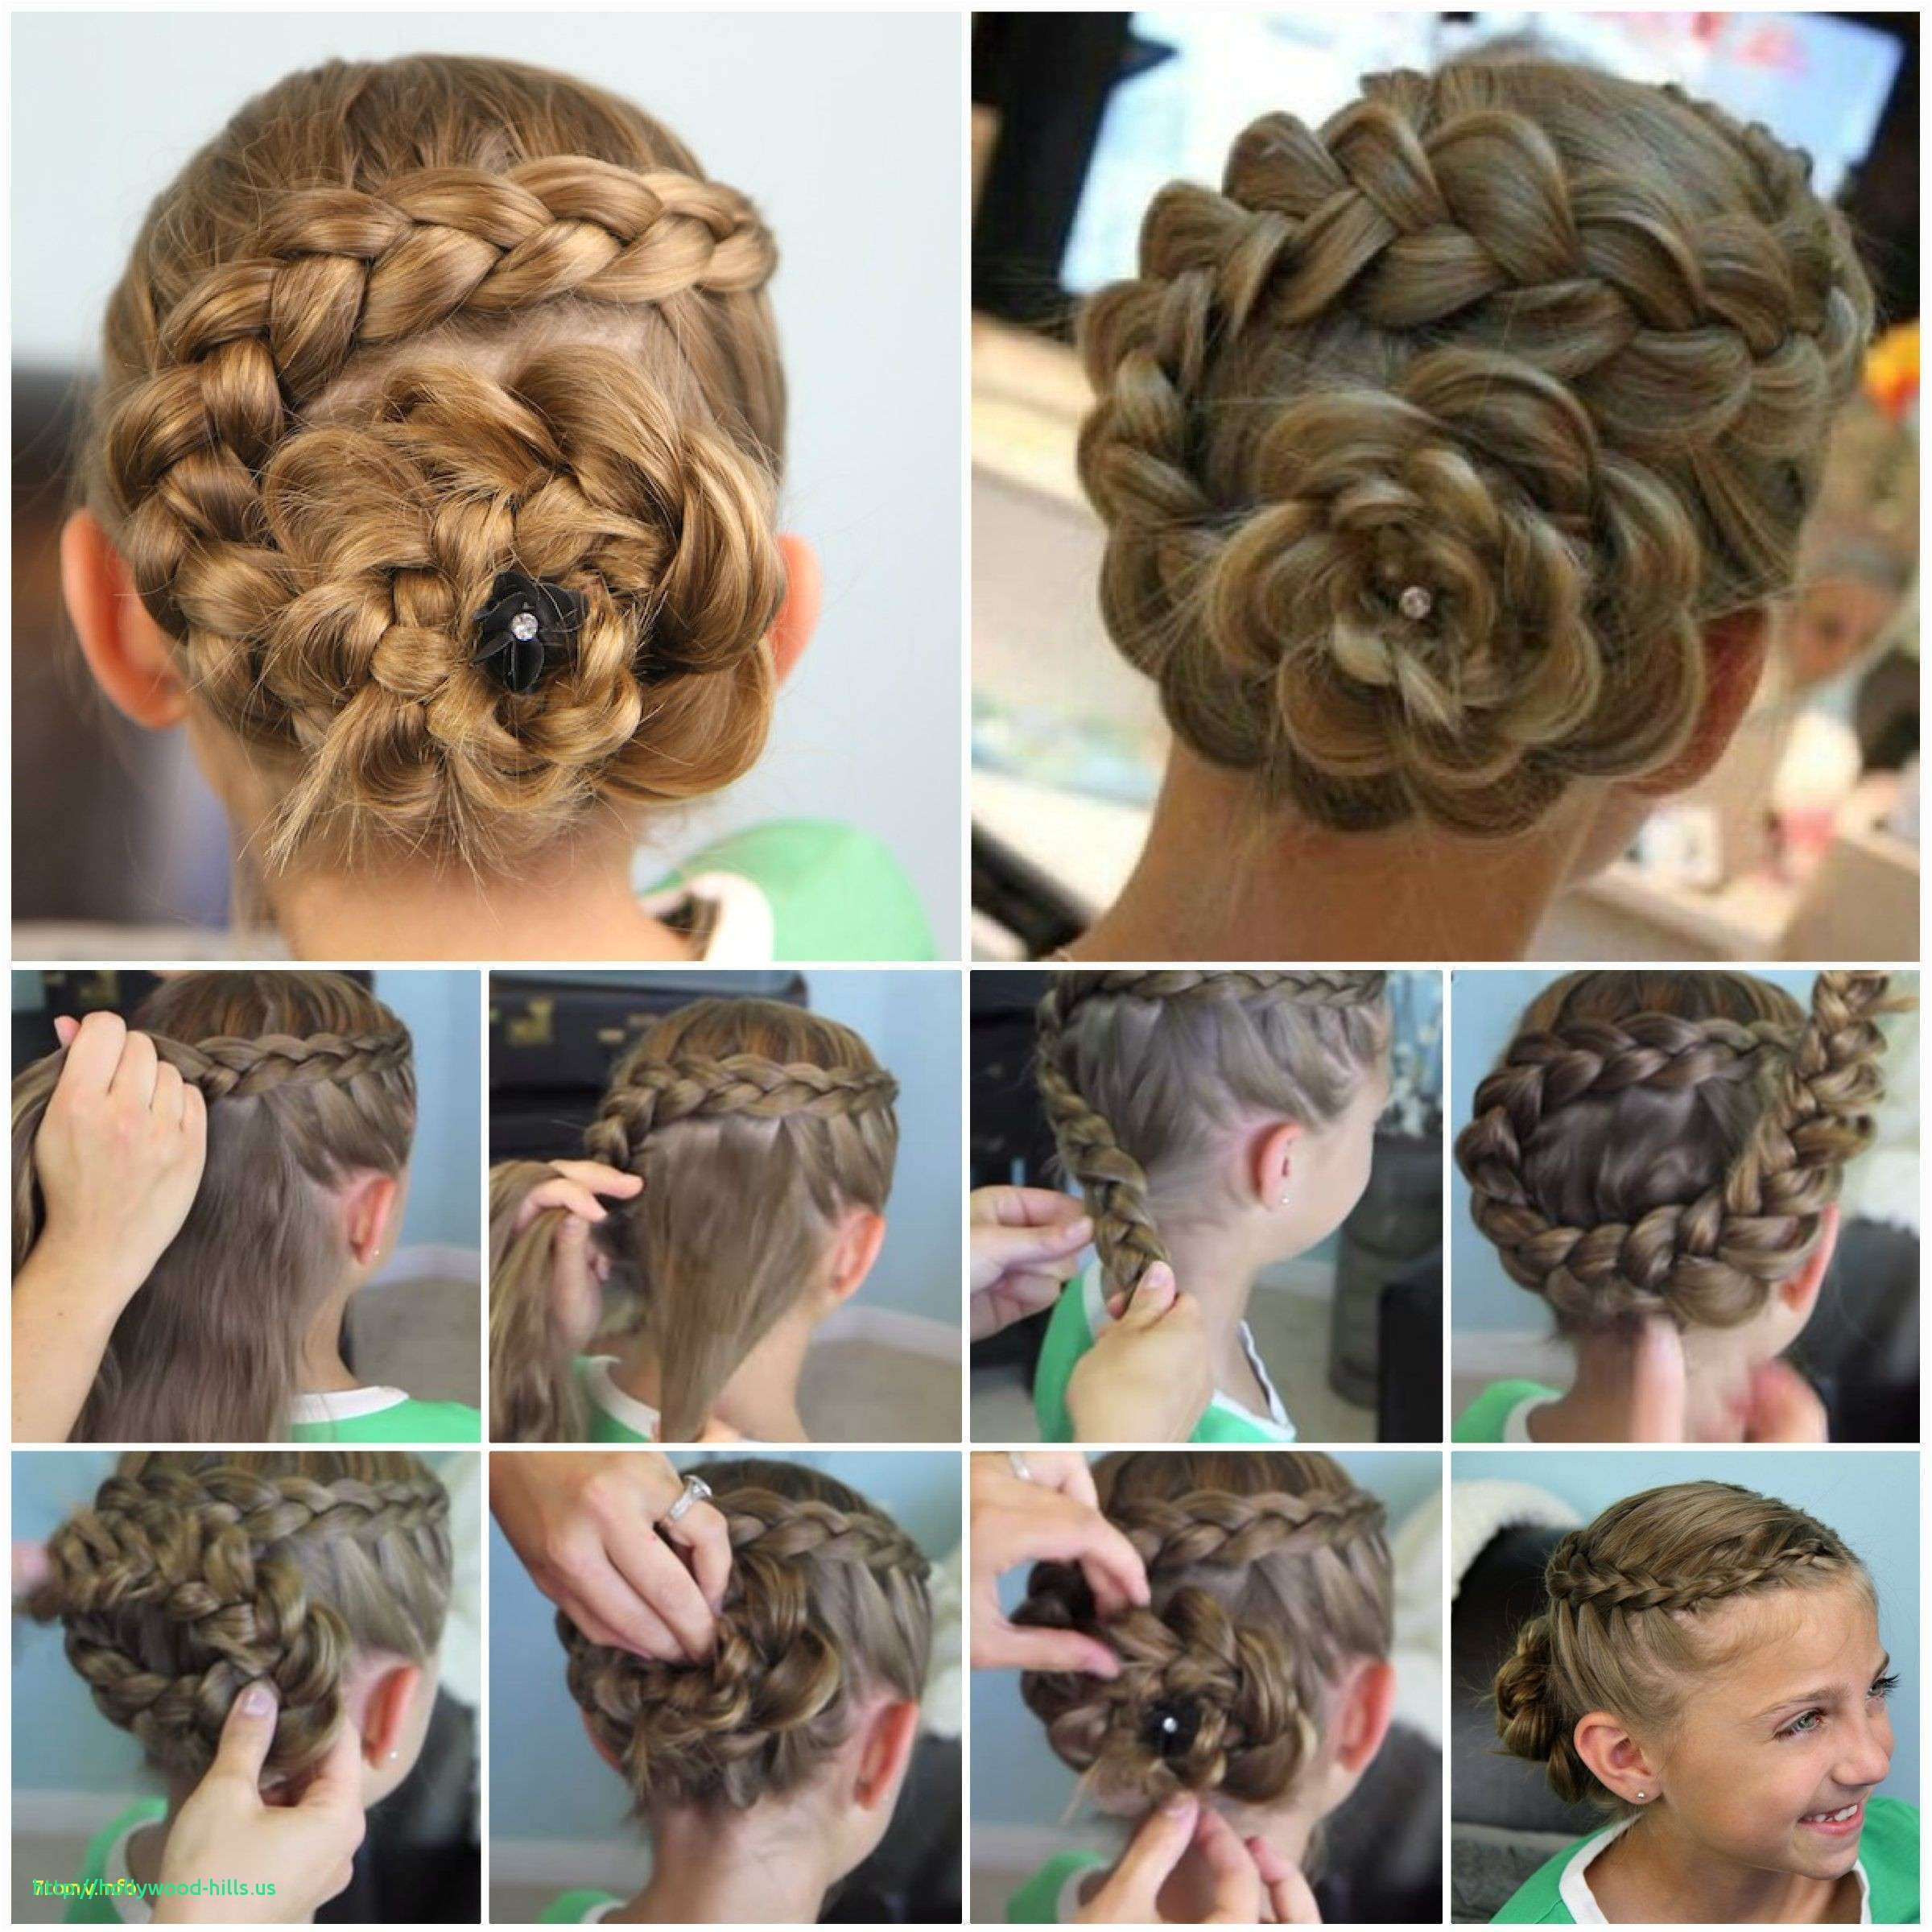 Cute Girls Hairstyles Buns Inspirational Indian Hairstyles for Long Hair Youtube Beautiful Curly Prom Wedding